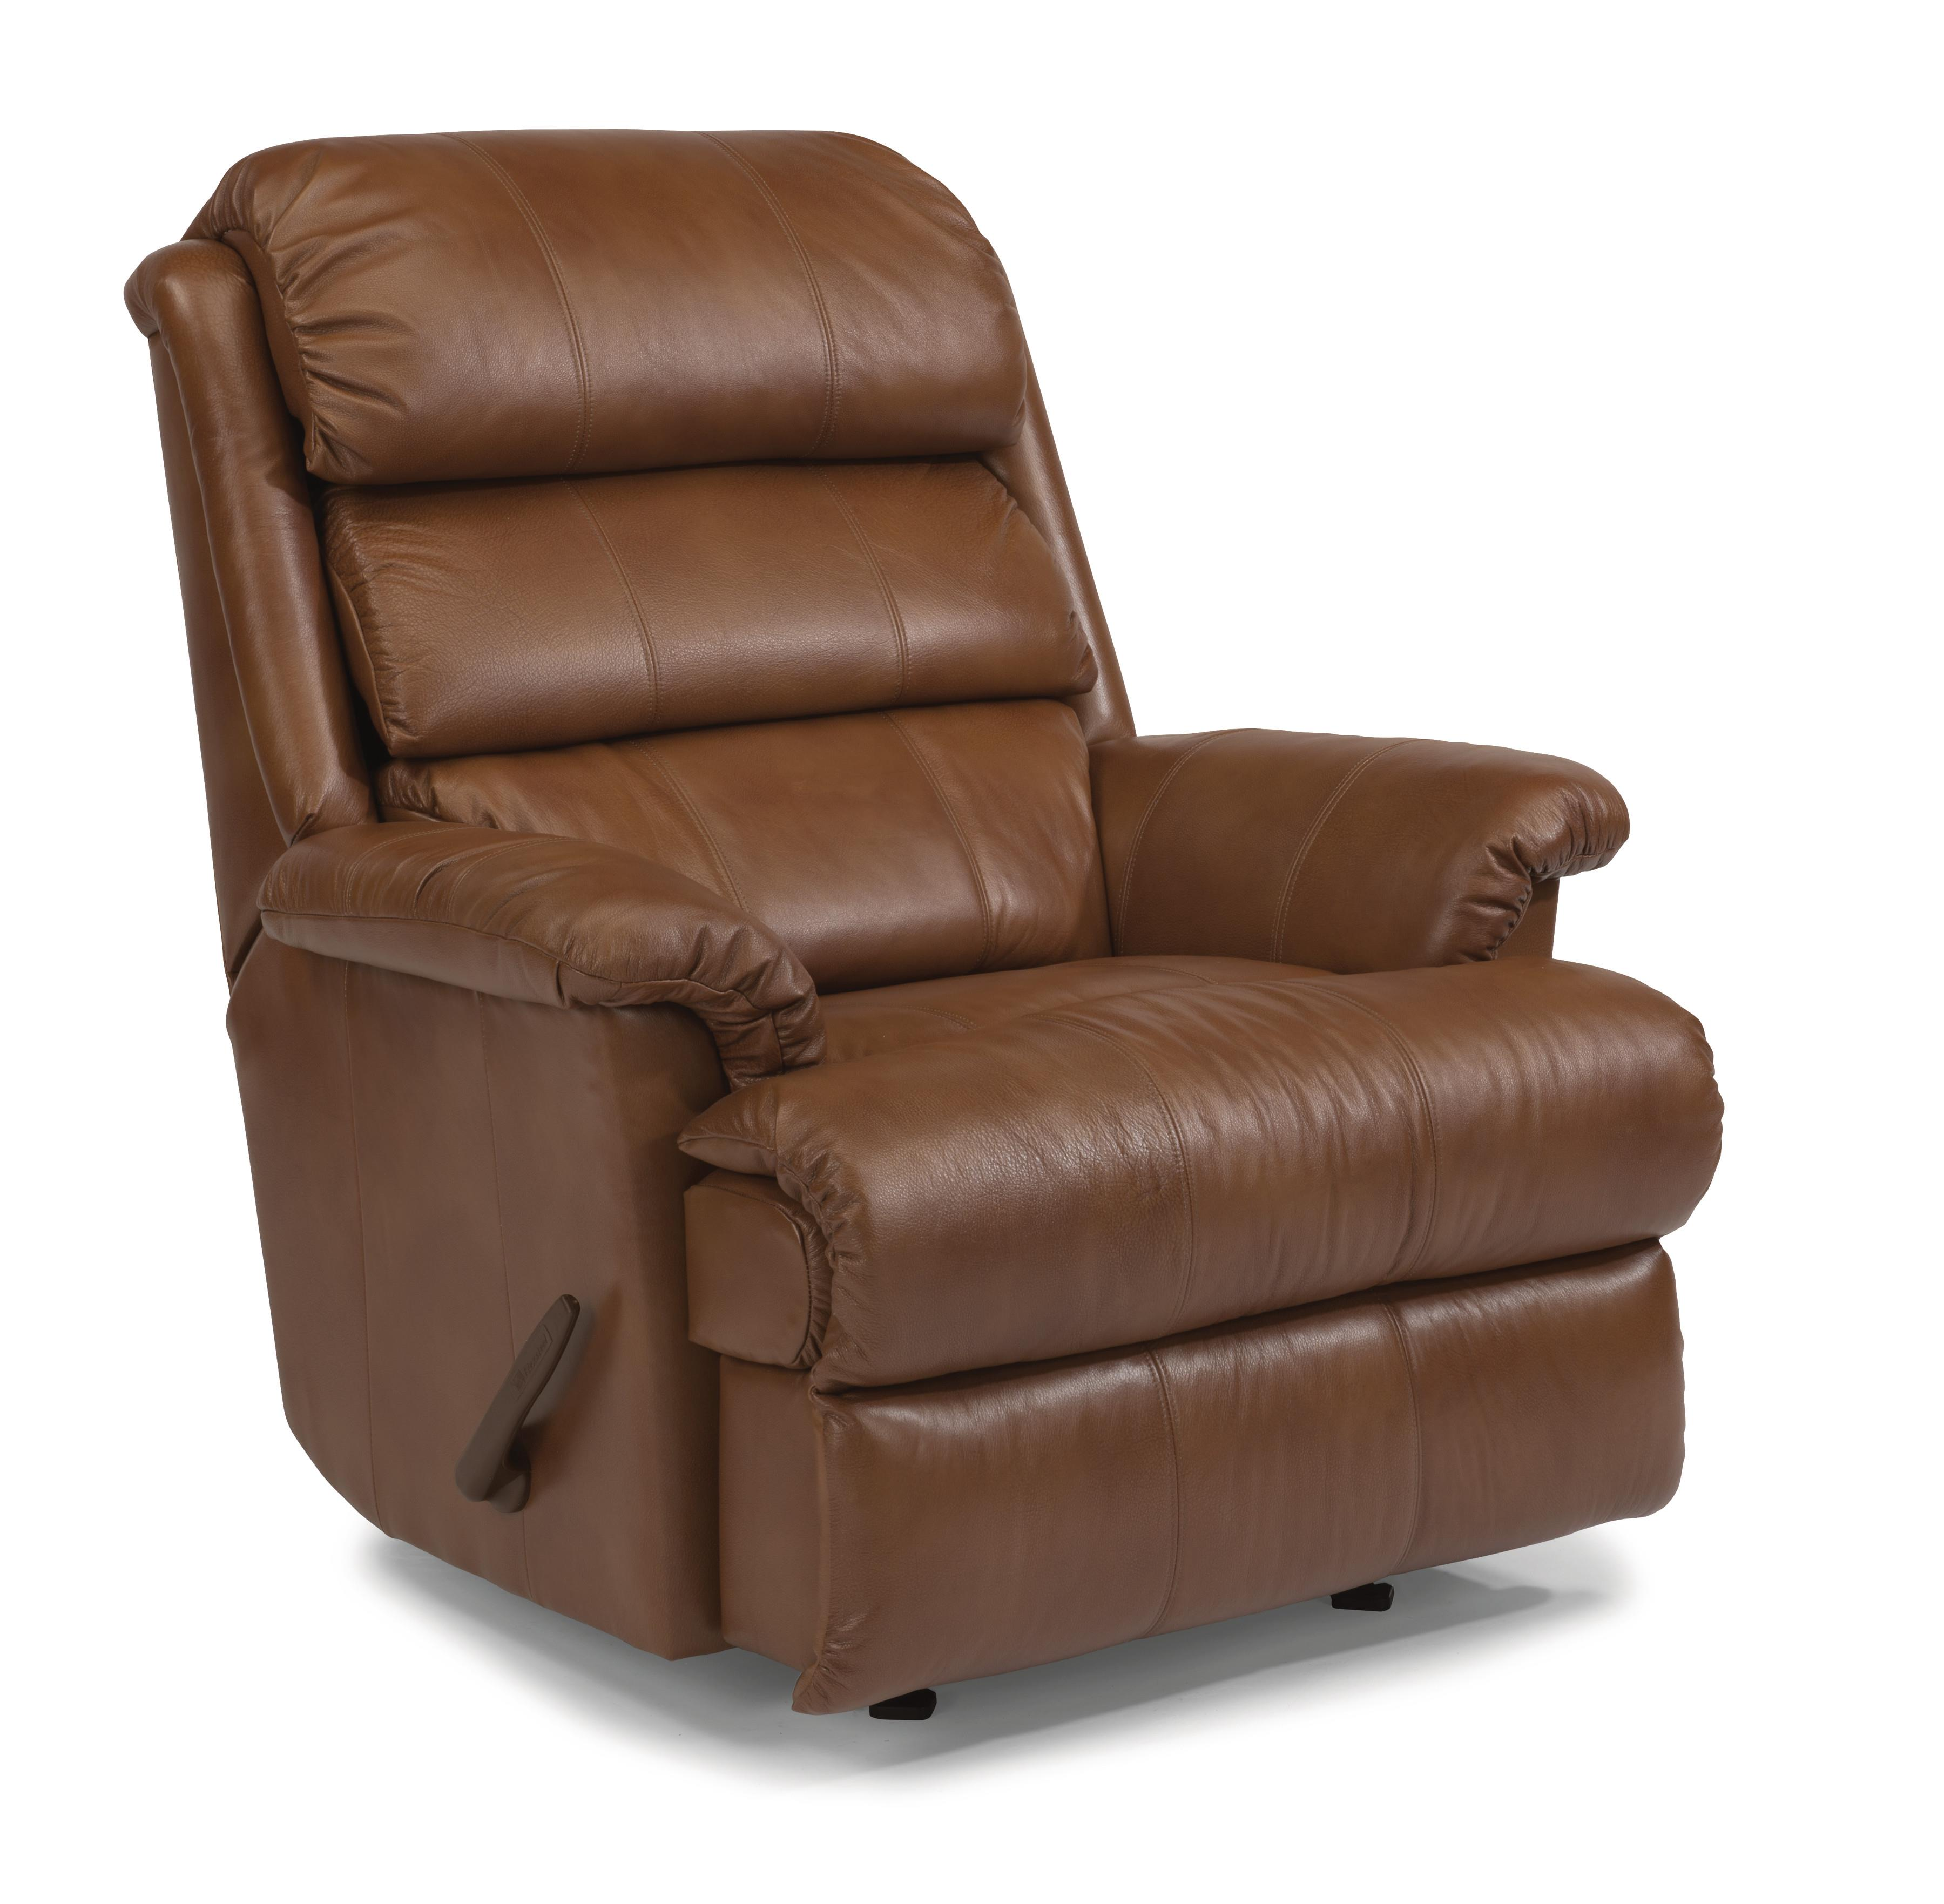 Yukon Wall Recliner with Power